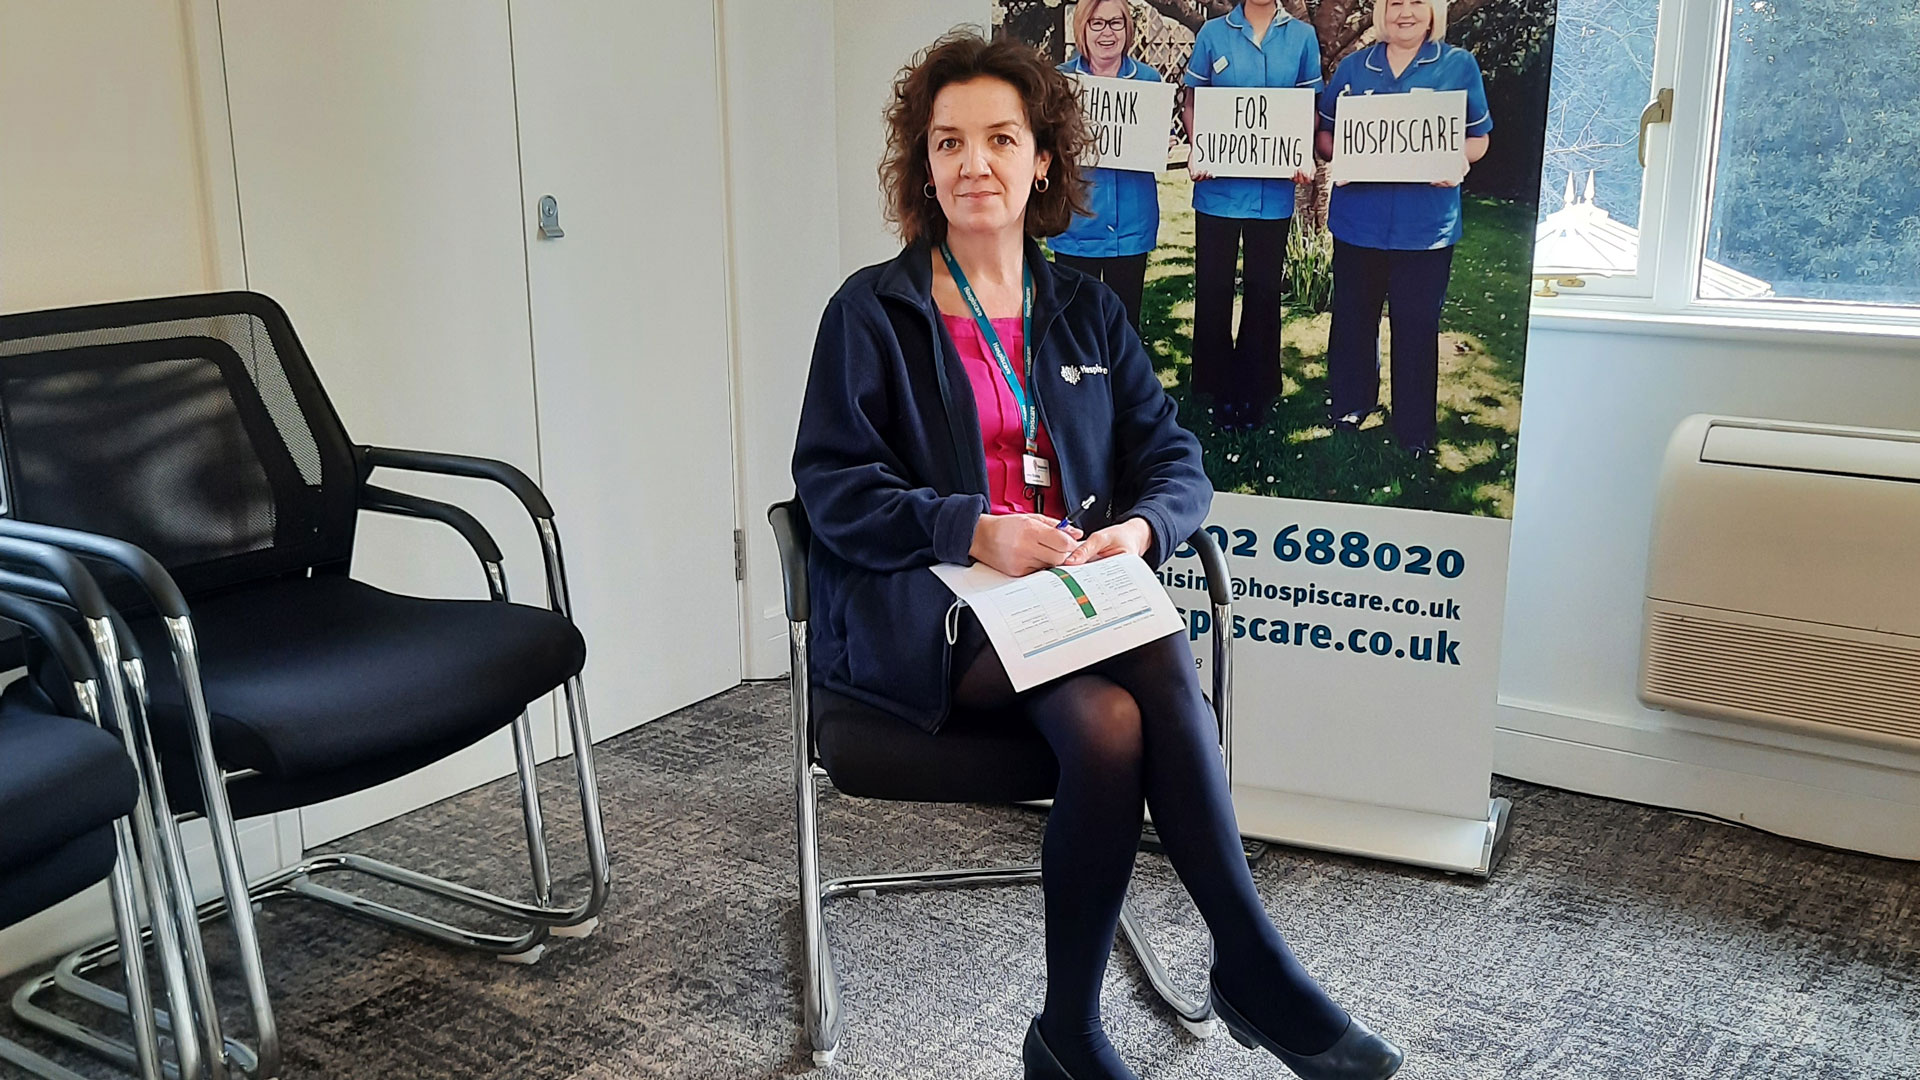 Ask an expert: Your questions answered by nurse Jayne Bramley